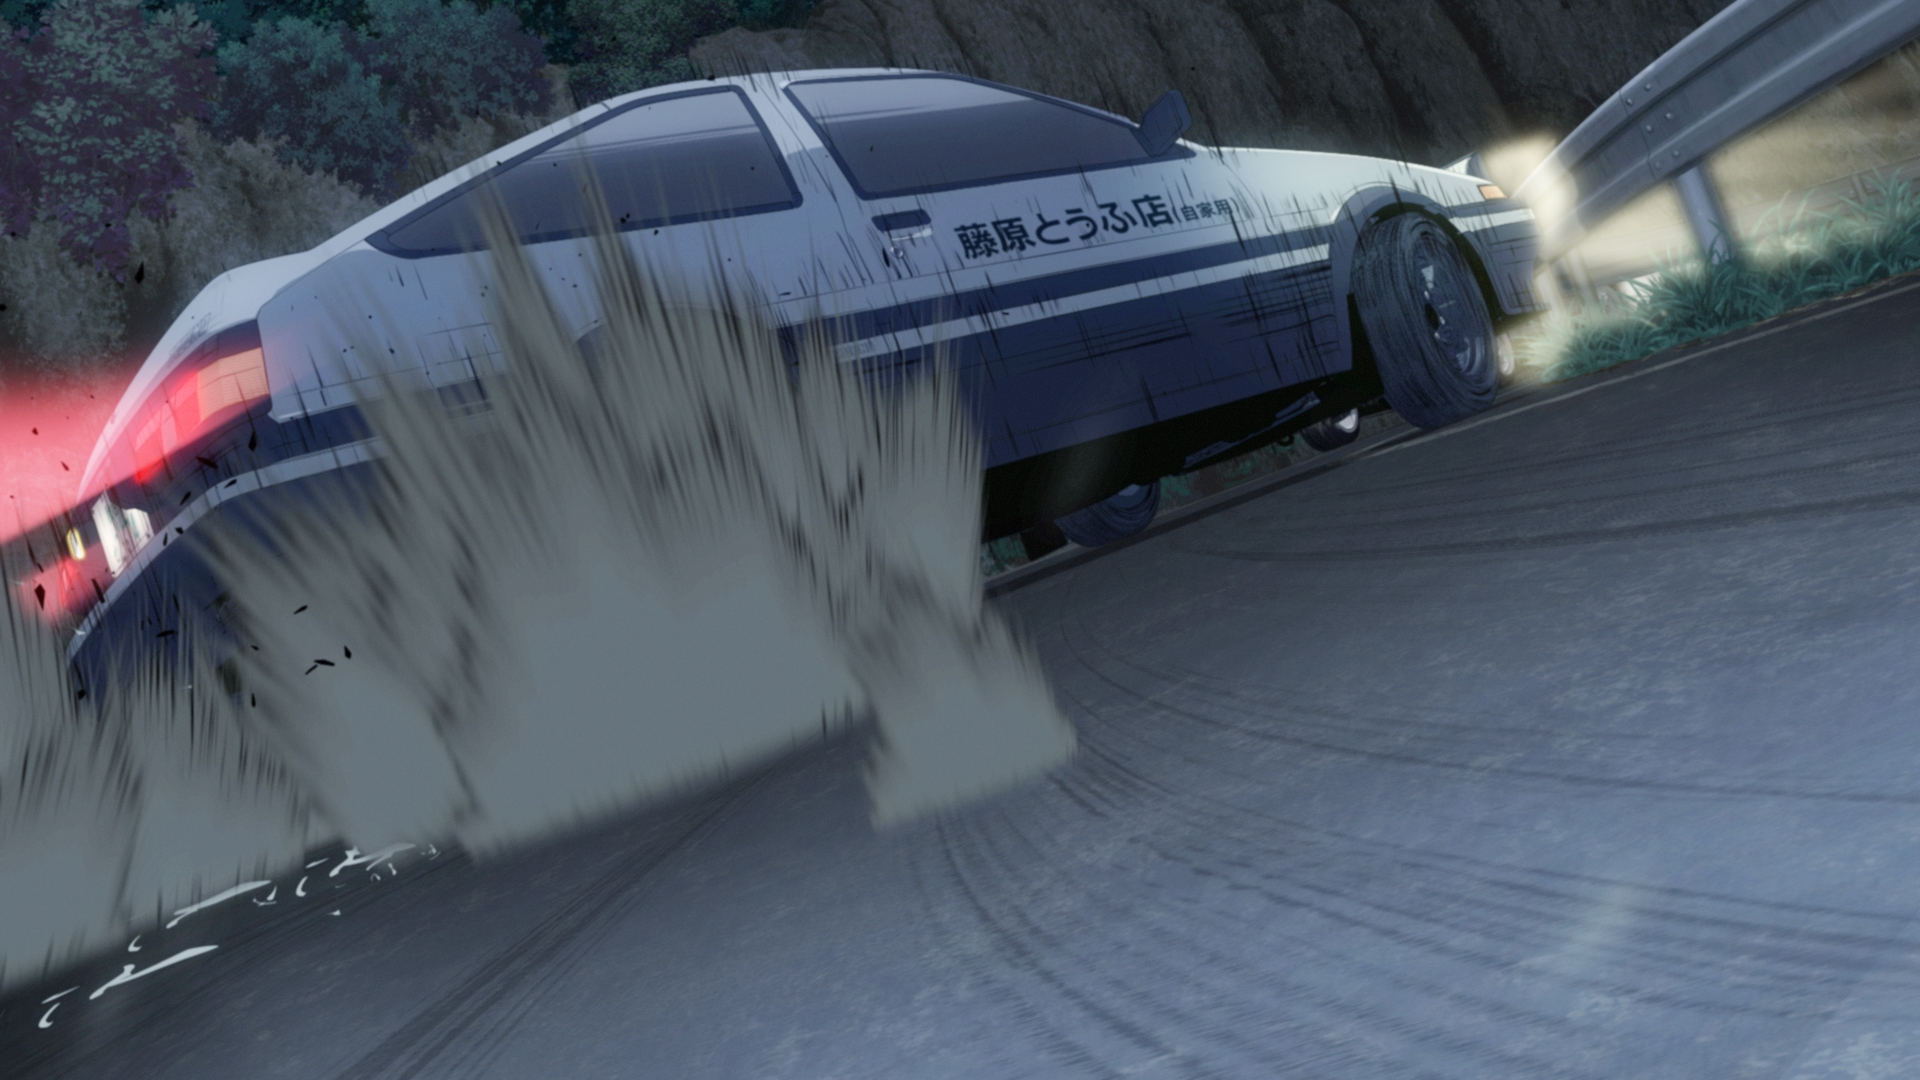 Cool Race Car Wallpaper Movie Review Quot New Initial D The Movie Legend 2 Racer